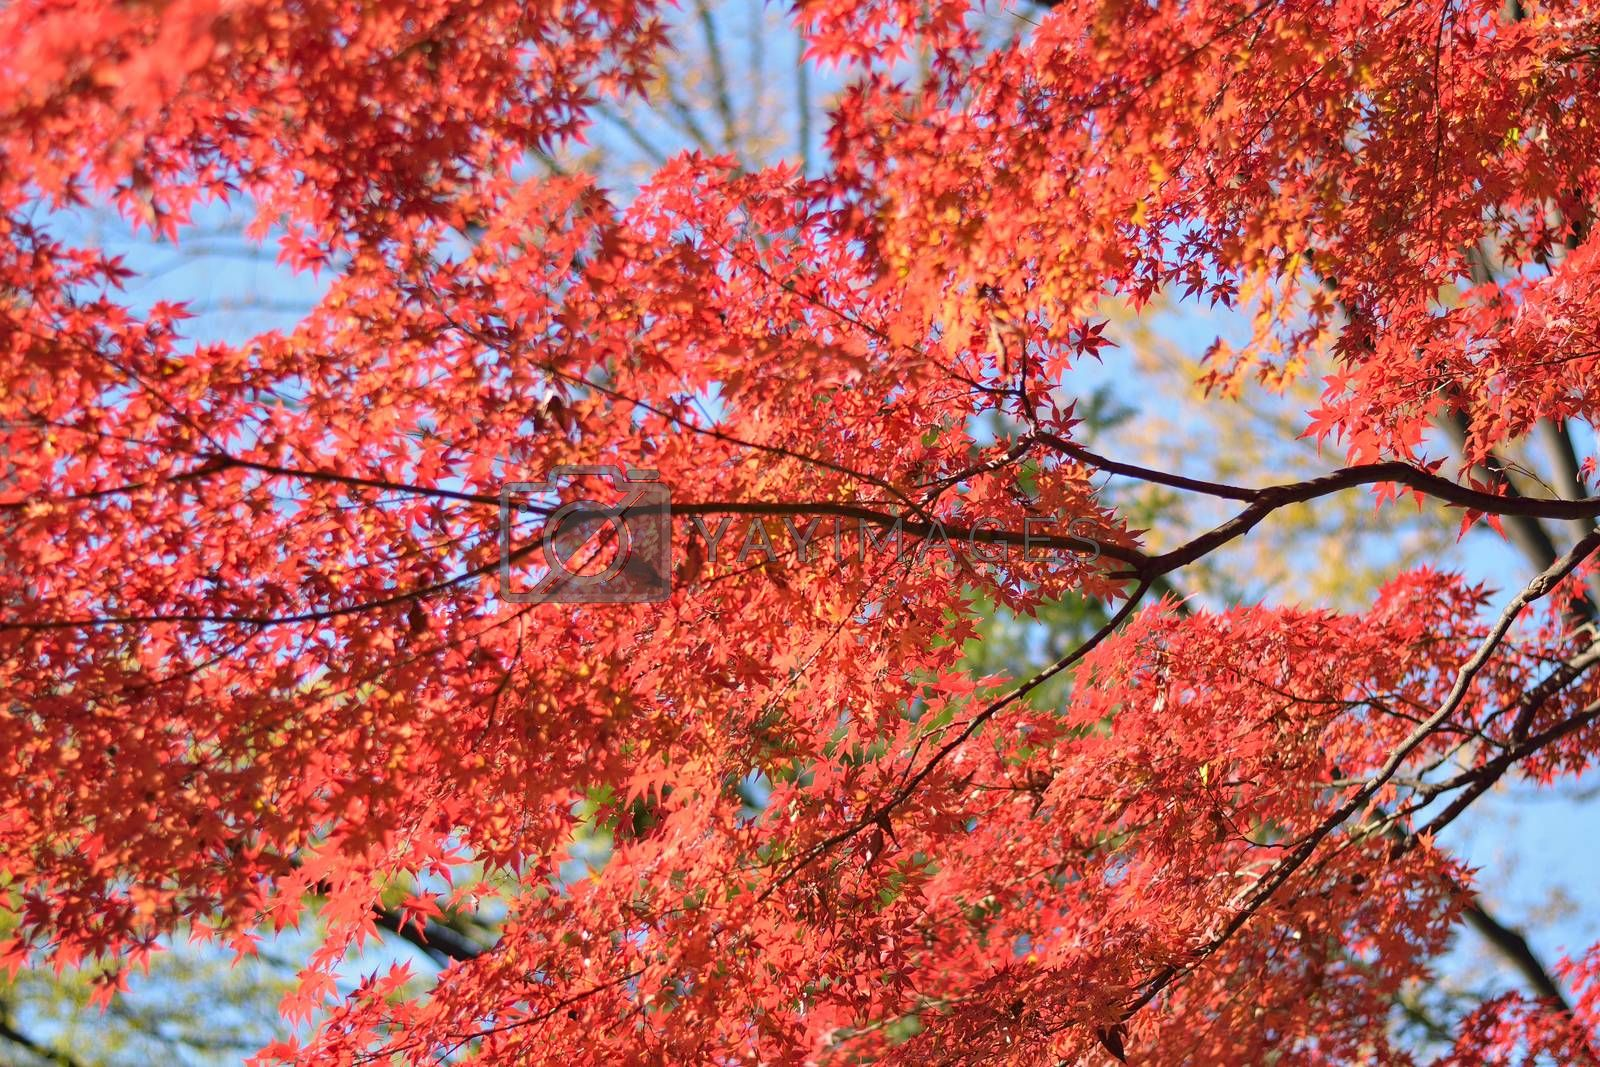 Background texture of Japanese Autumn Maple leaves in horizontal frame